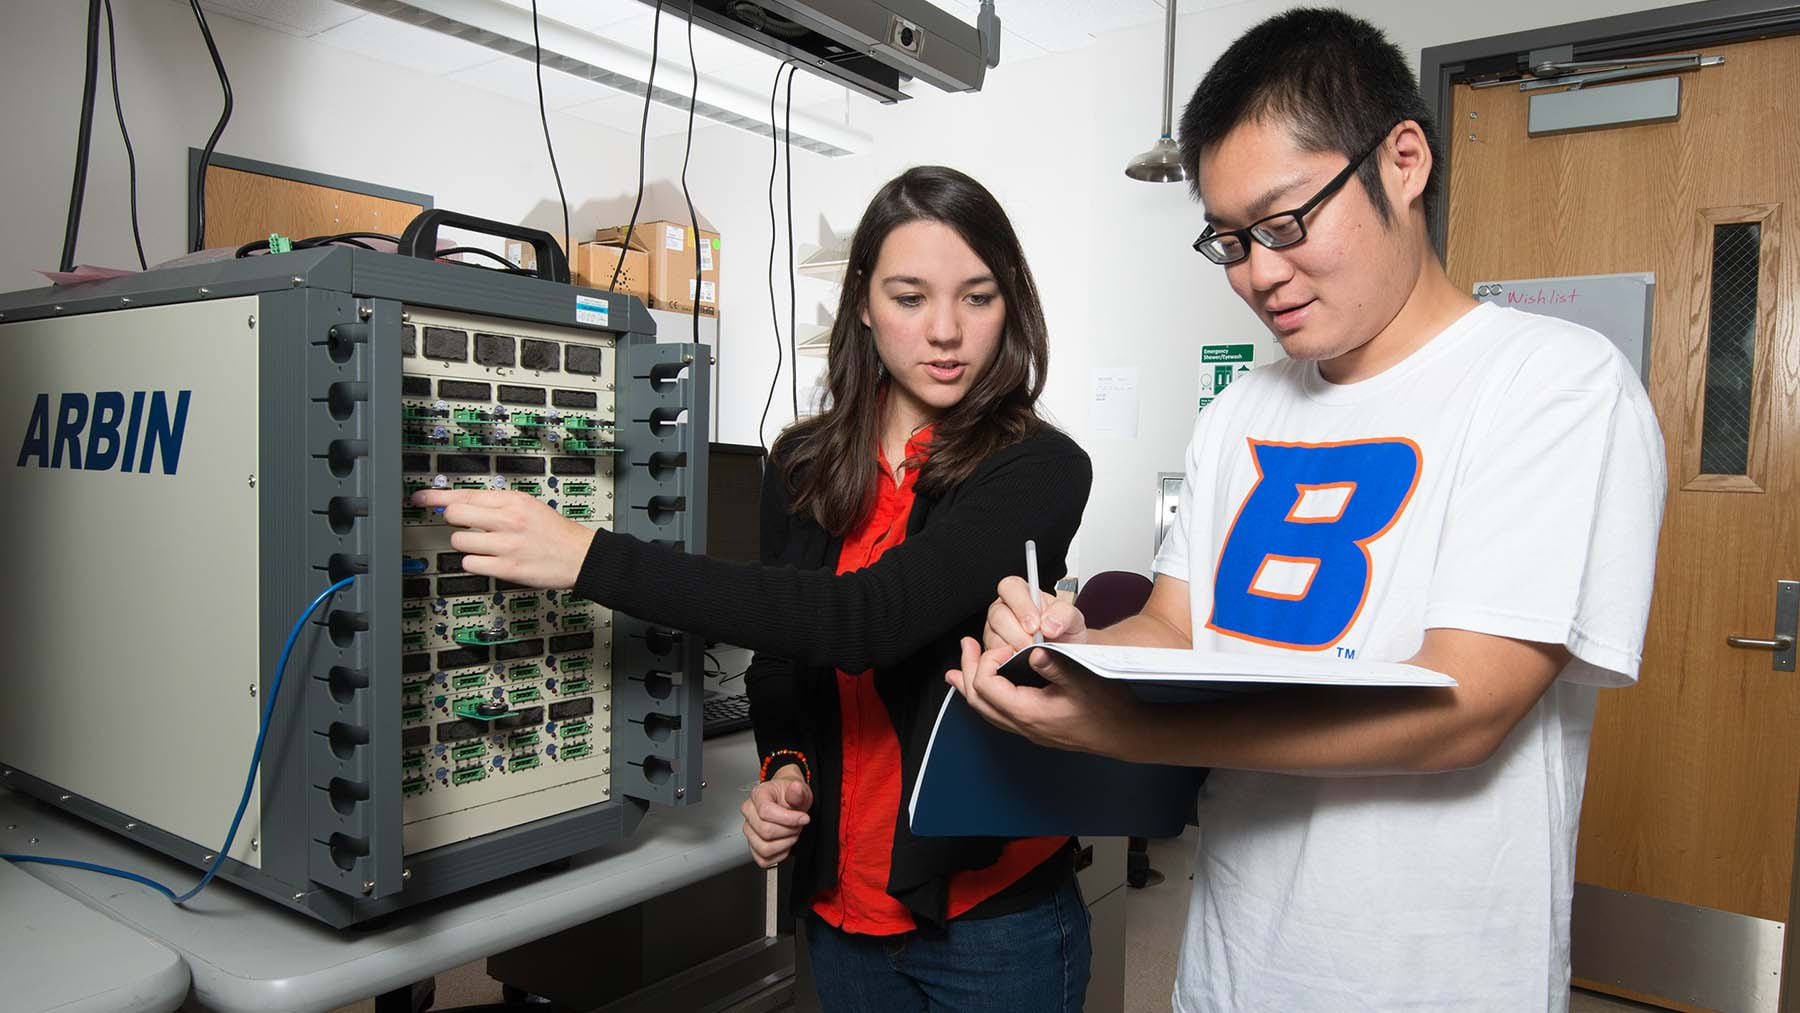 Boise State reduced cost per user by more than 99 percent with TechSmith Relay